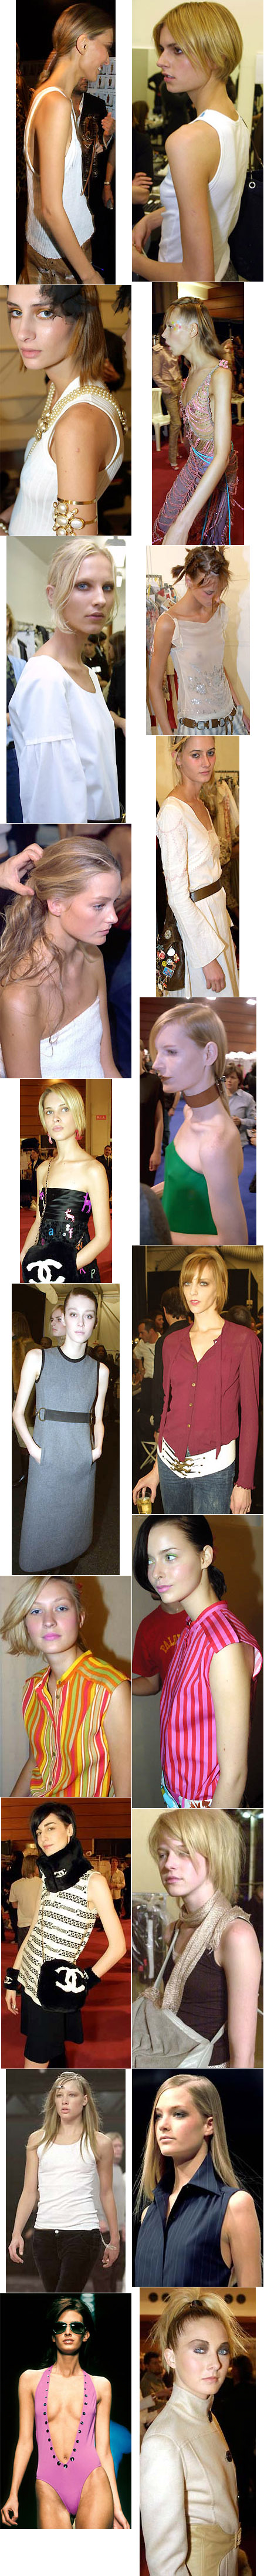 Some examples of the small breasts often seen in high-fashion models.